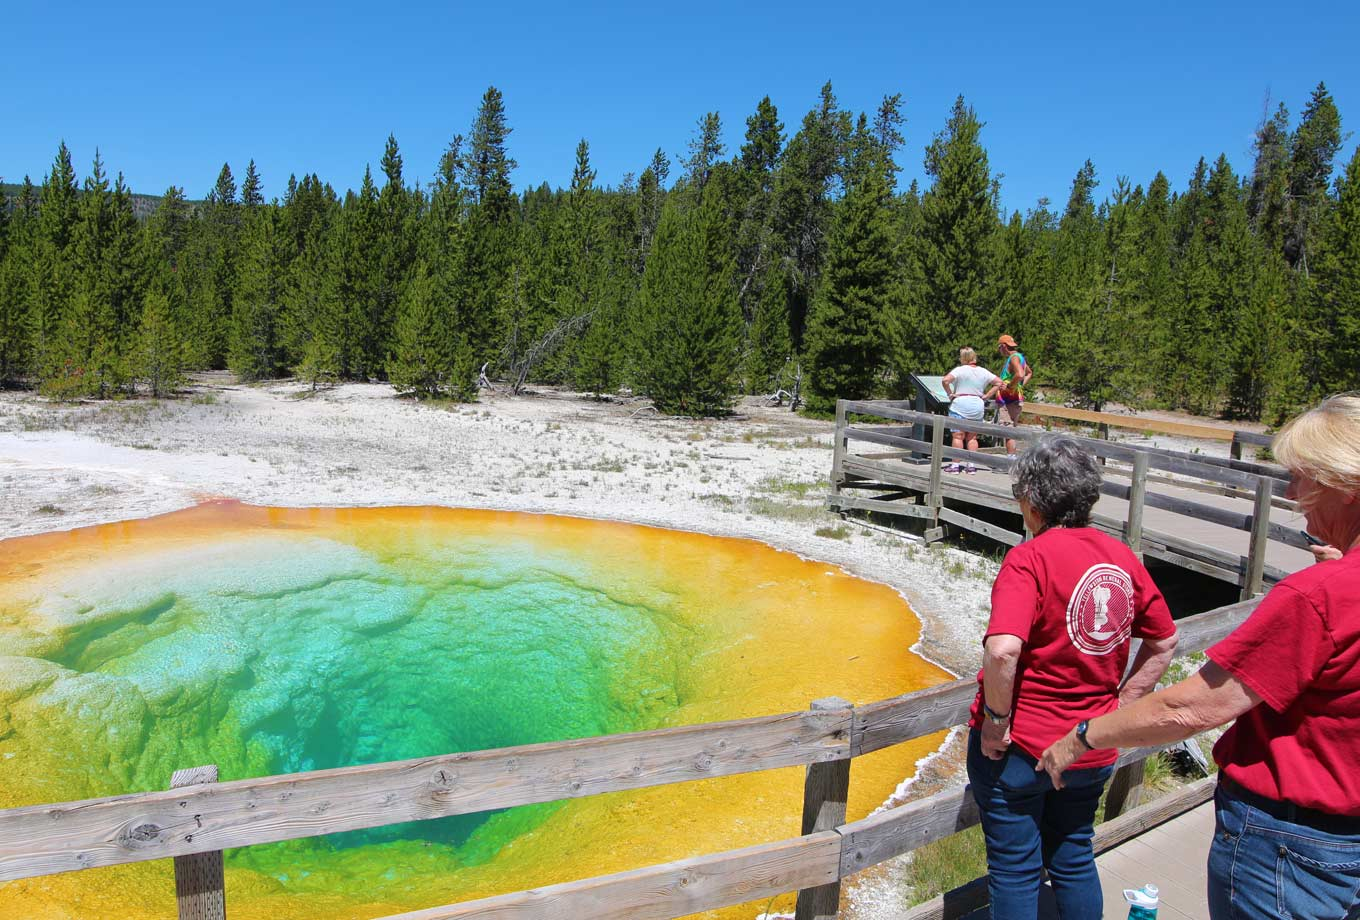 Yellowstone National Park summer activities